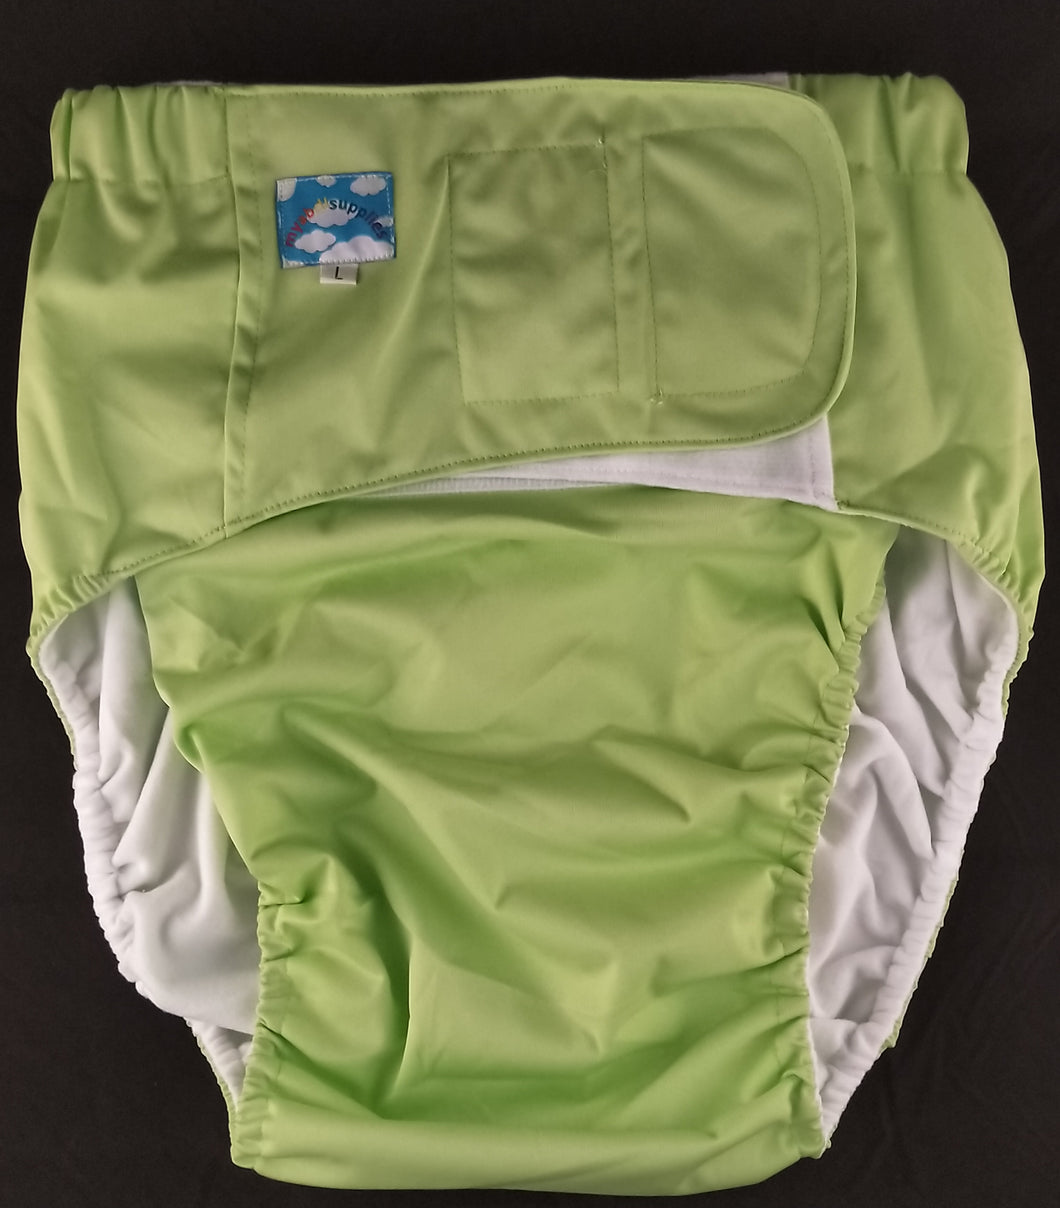 Lime Eco Pocket Diaper L